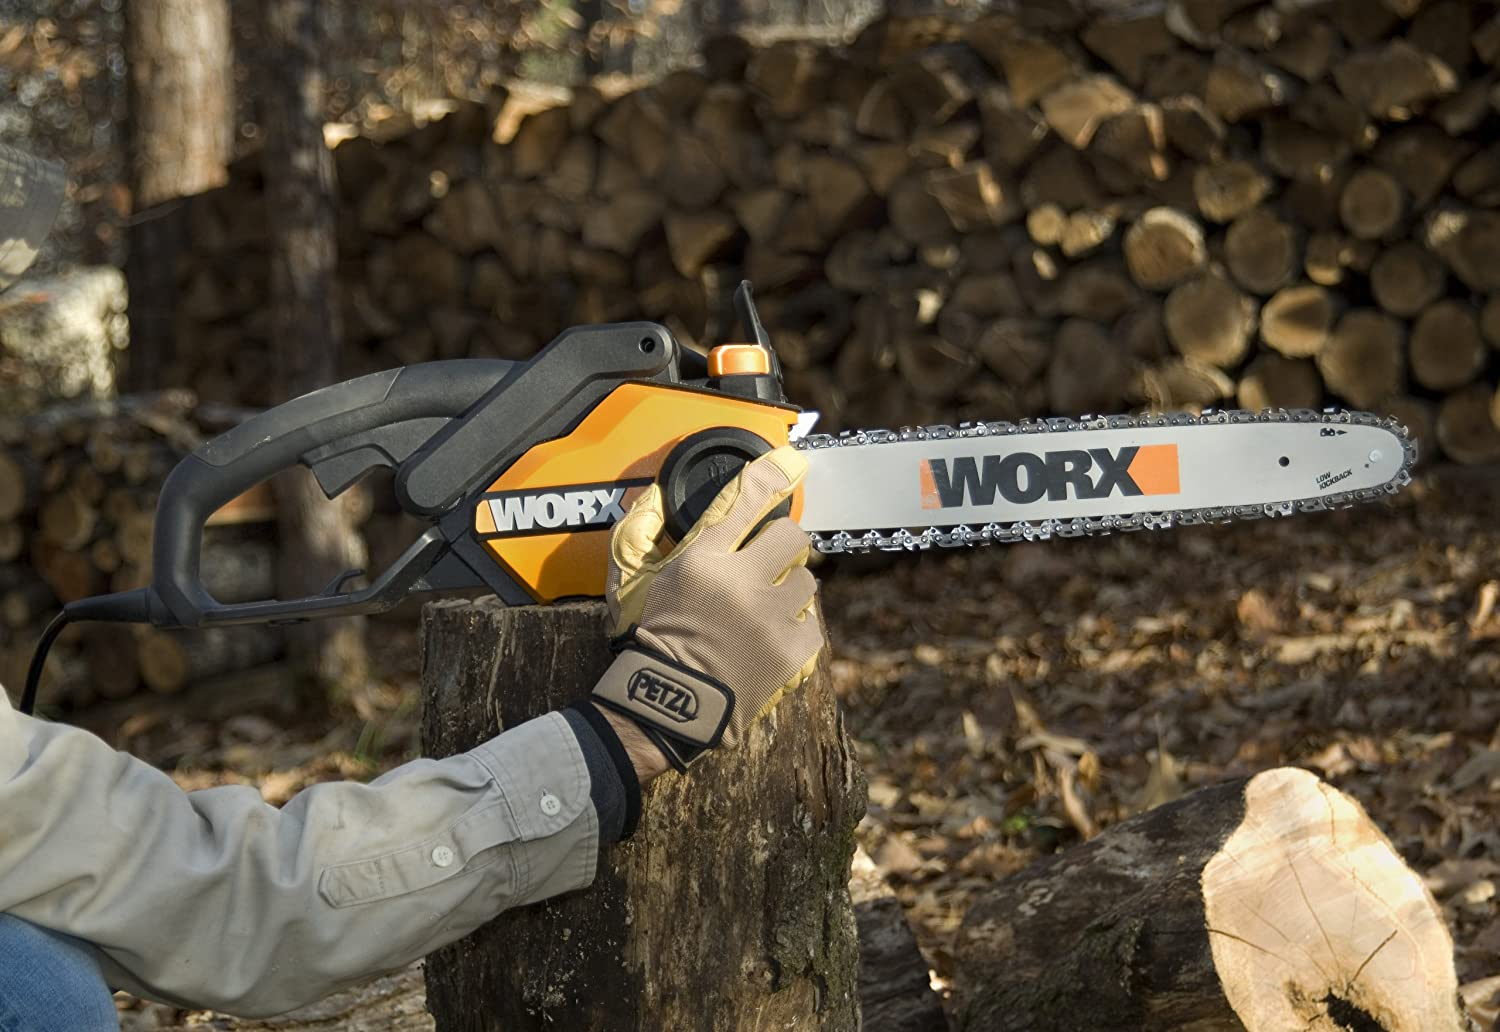 WORX WG3041 Chainsaws product image 4